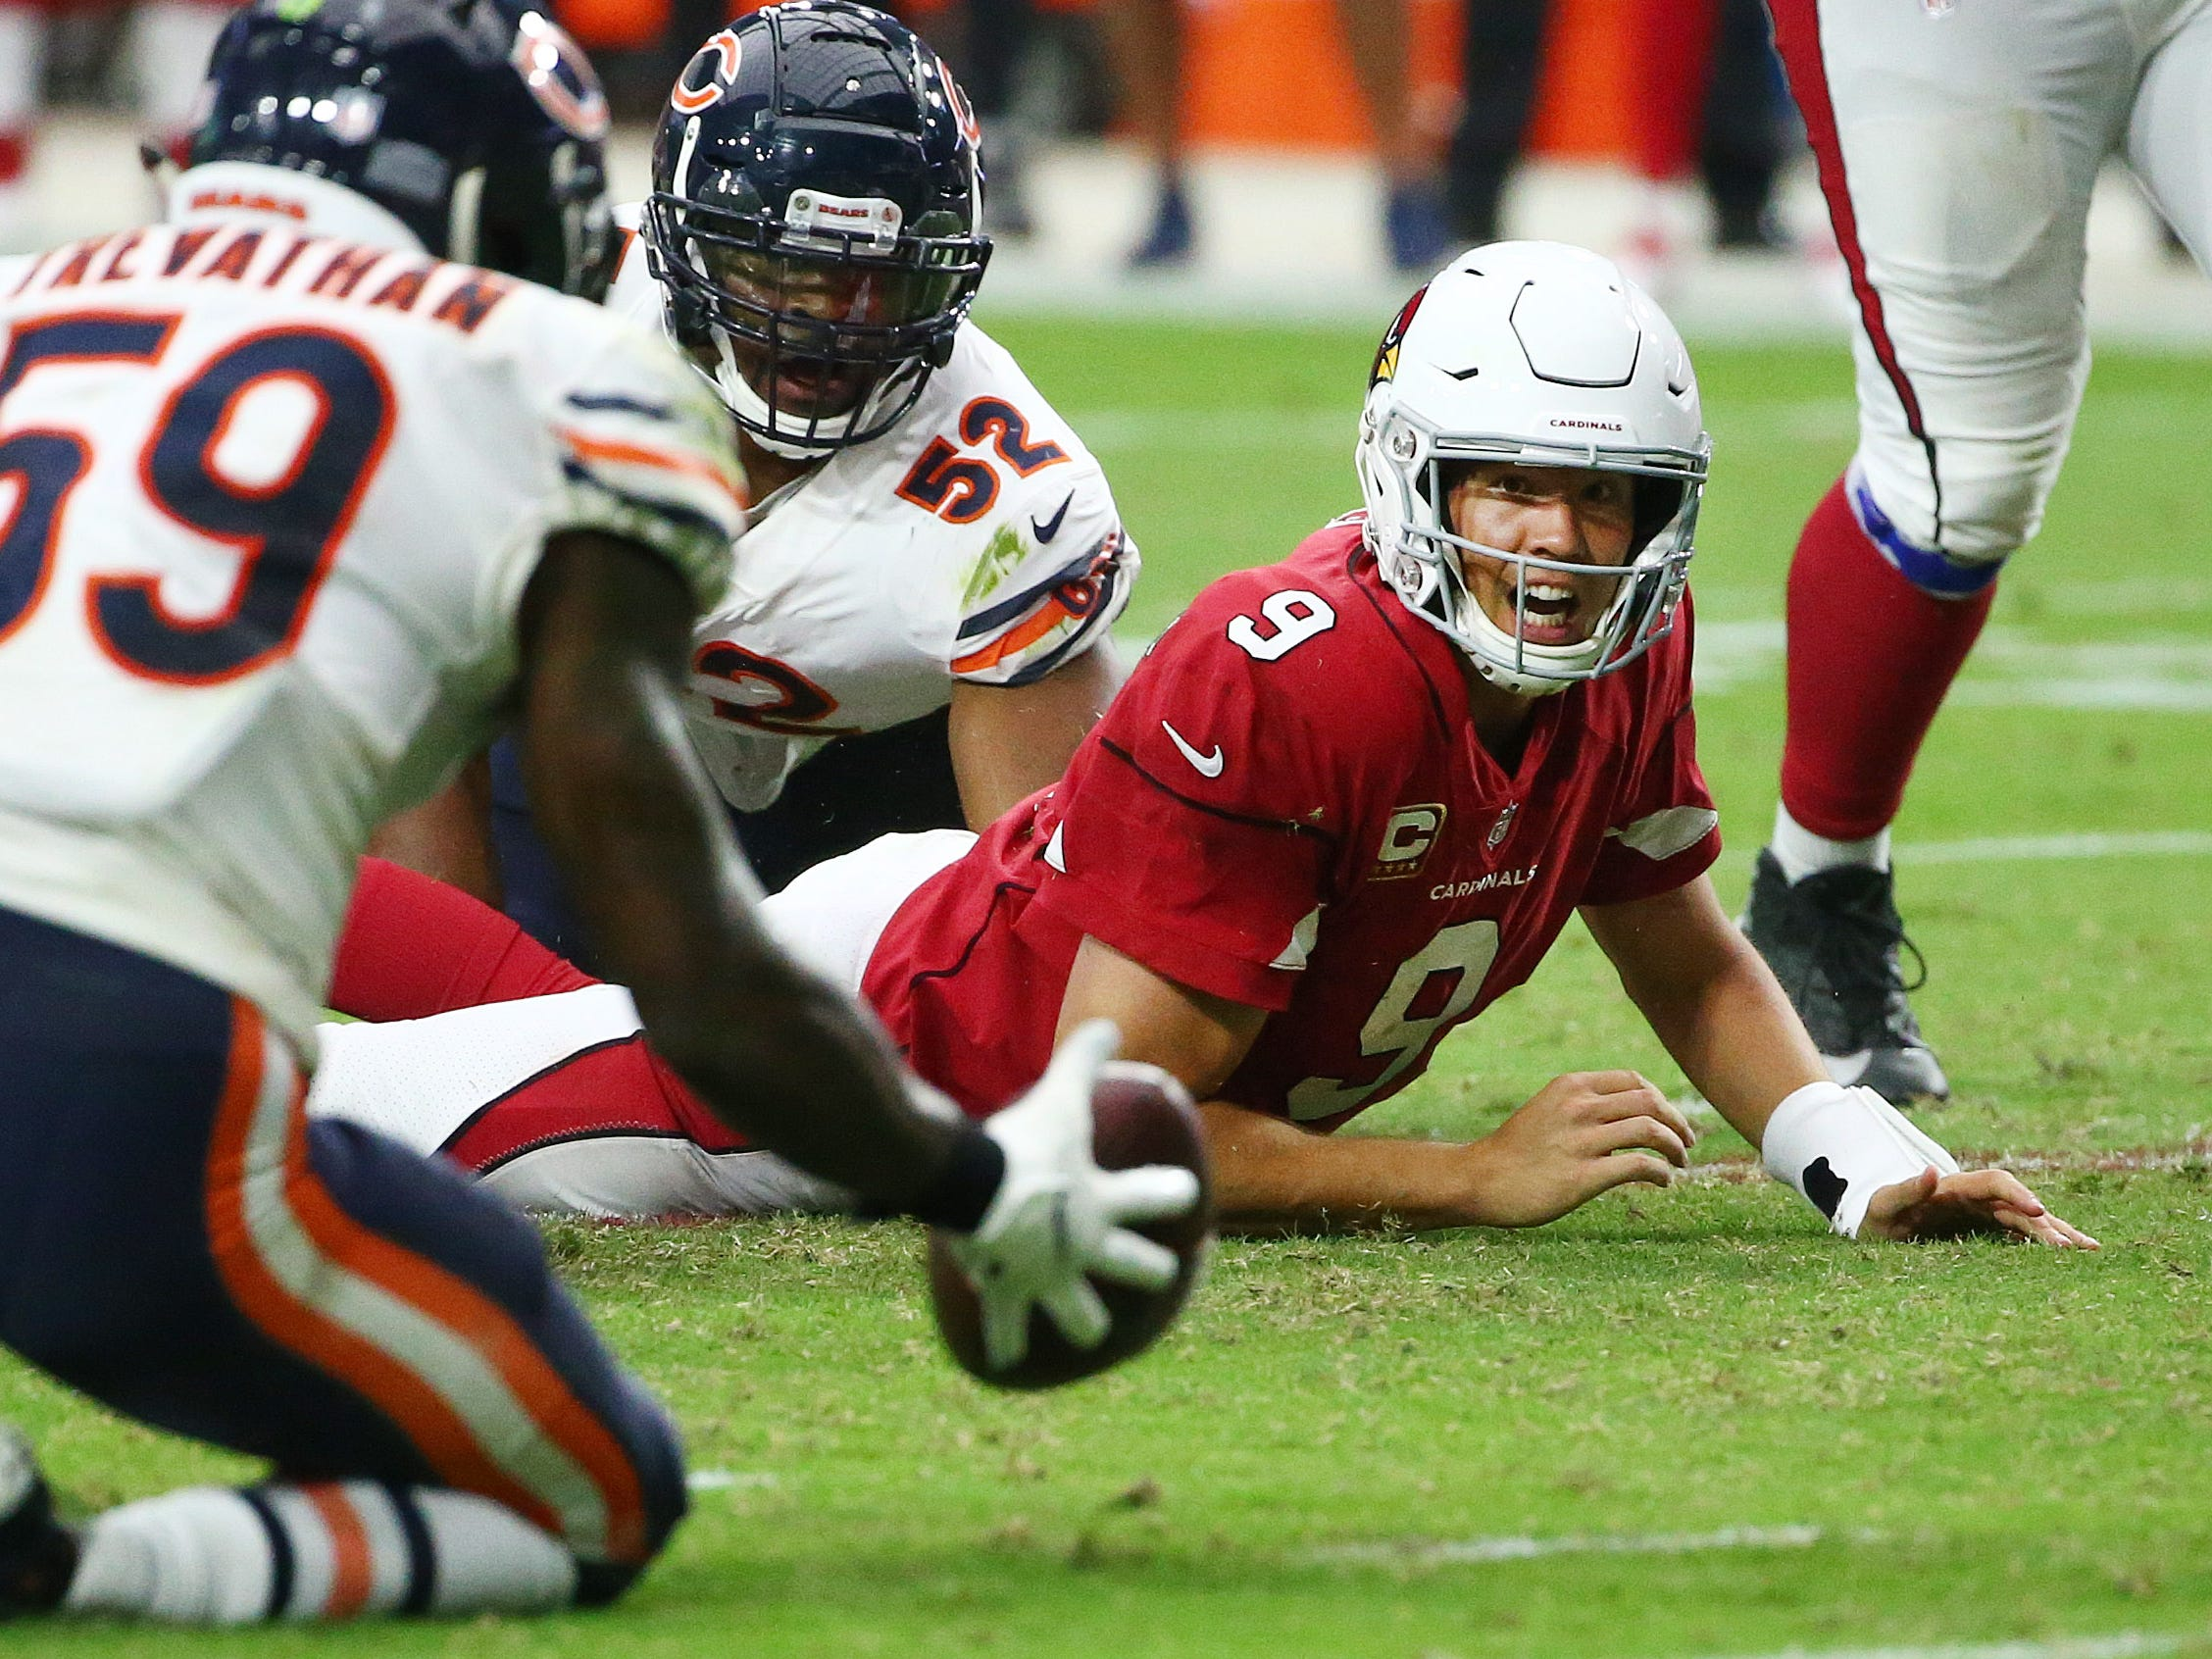 Arizona Cardinals quarterback Sam Bradford watches his fumble roll into the hands of Chicago Bears linebacker Danny Trevathan in the second half at State Farm Stadium in Glendale, Ariz.